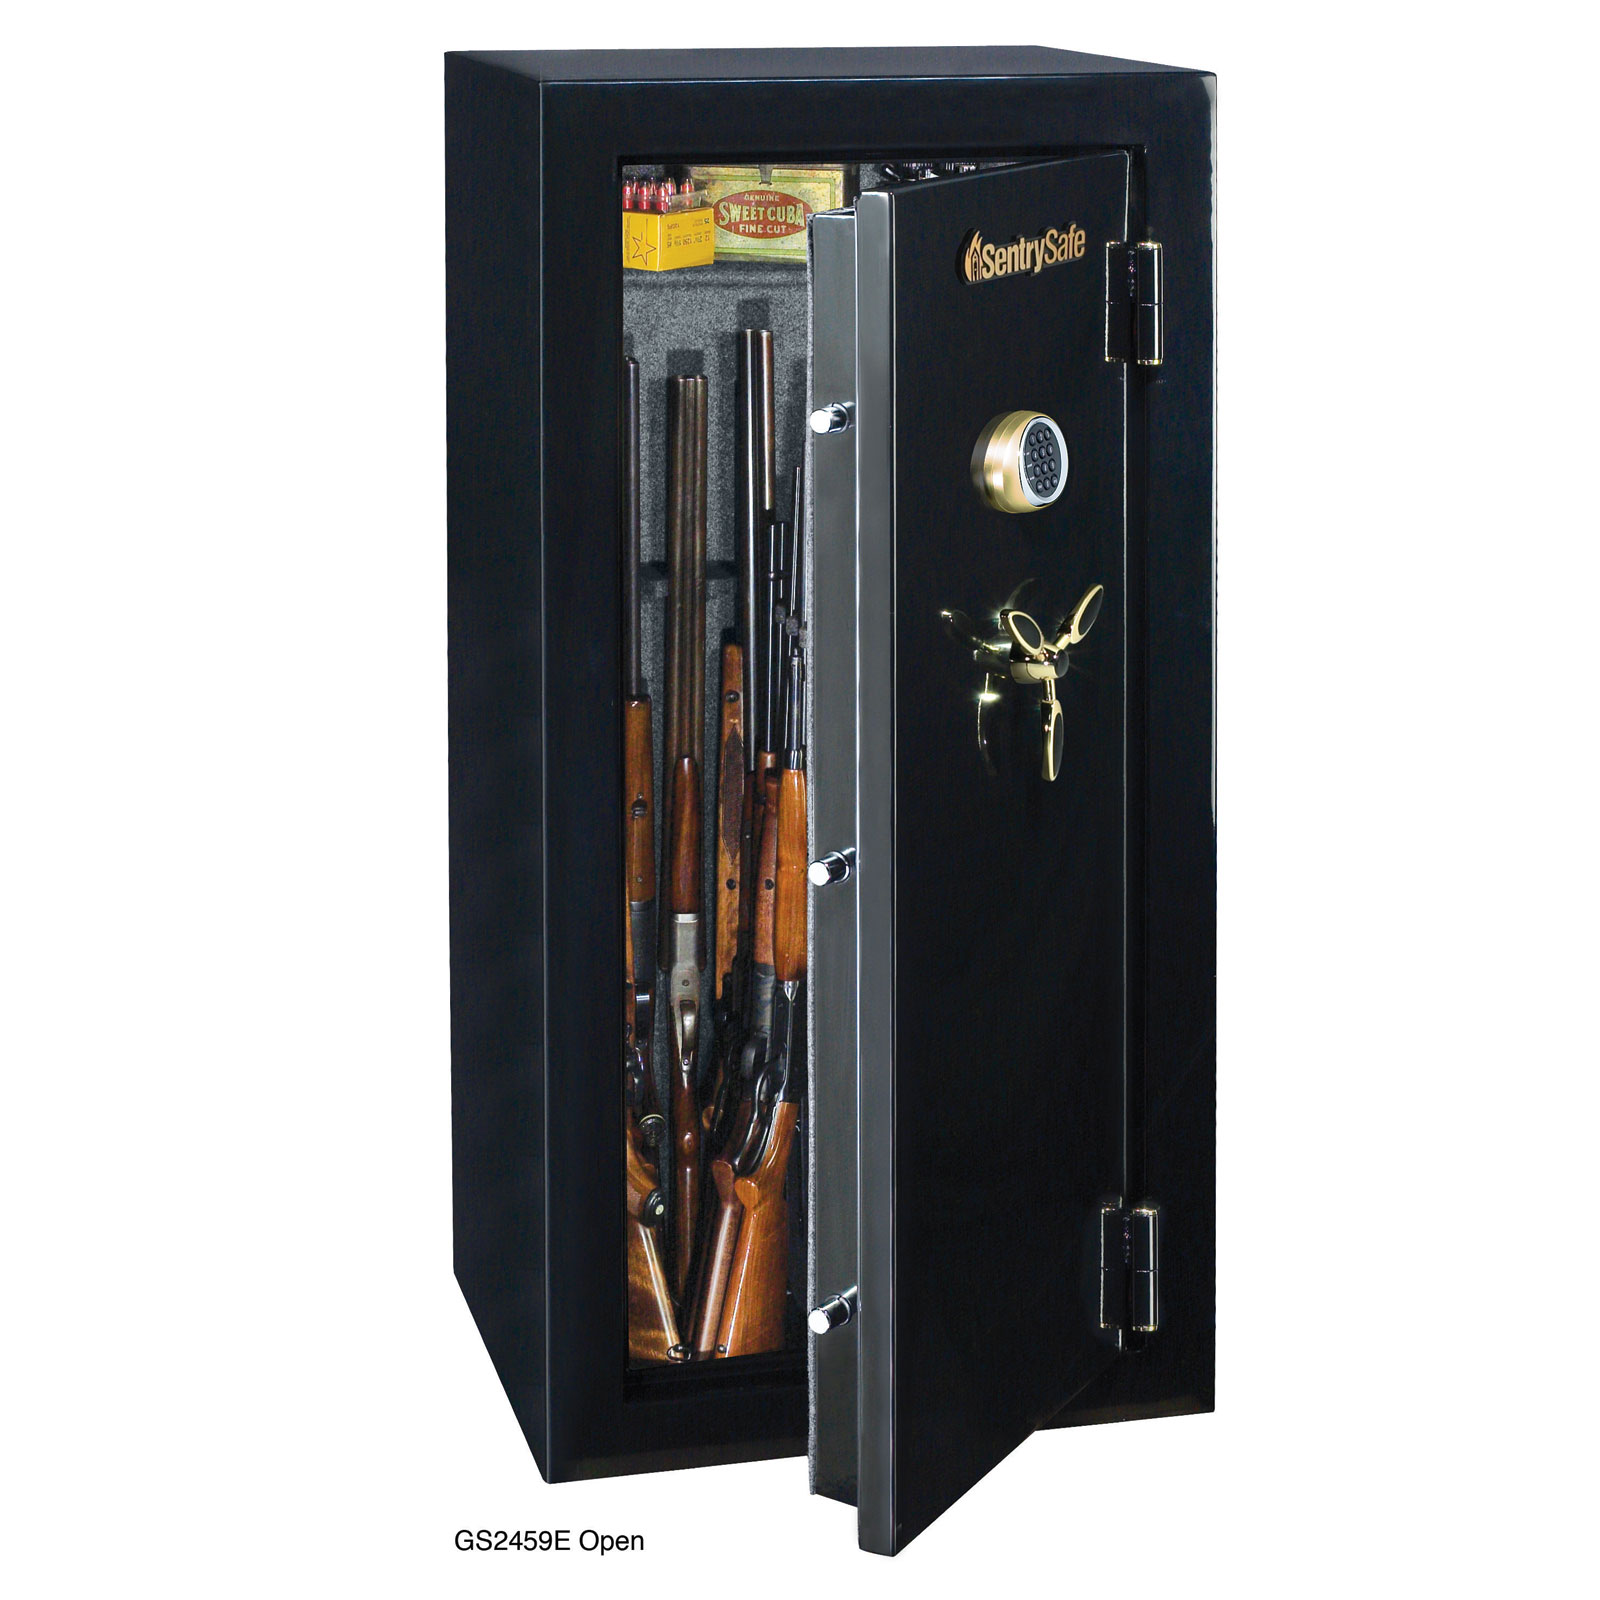 Sentry 2459E Gun Fire Safe with Electronic Lock - 24-Gun GS2459E